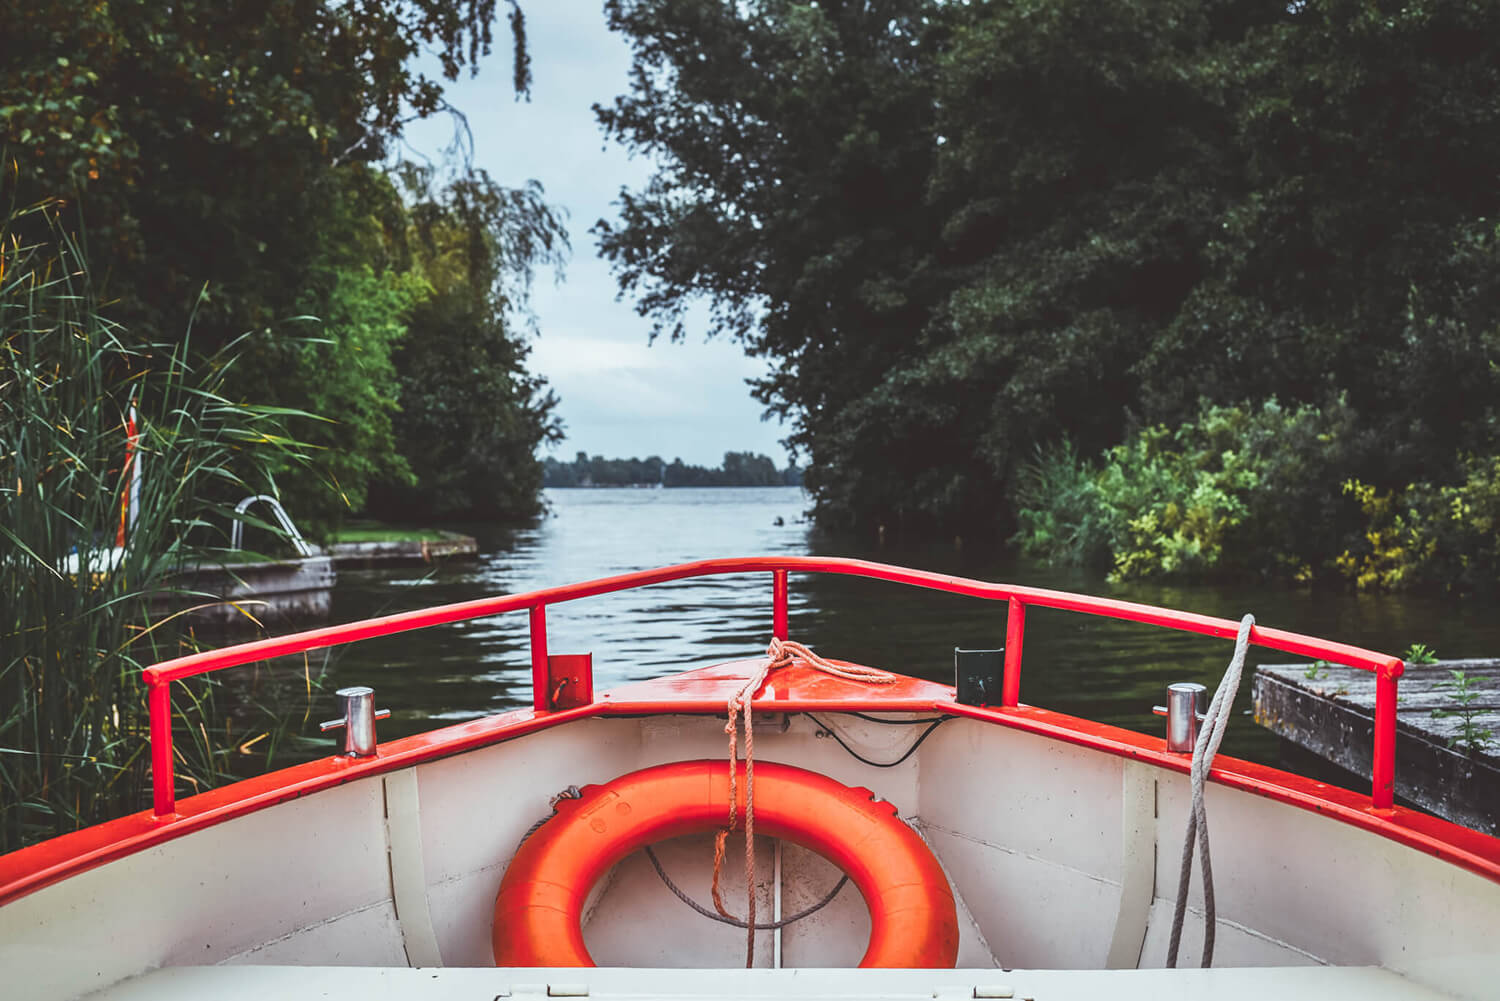 Things to see and do in Aalsmeer